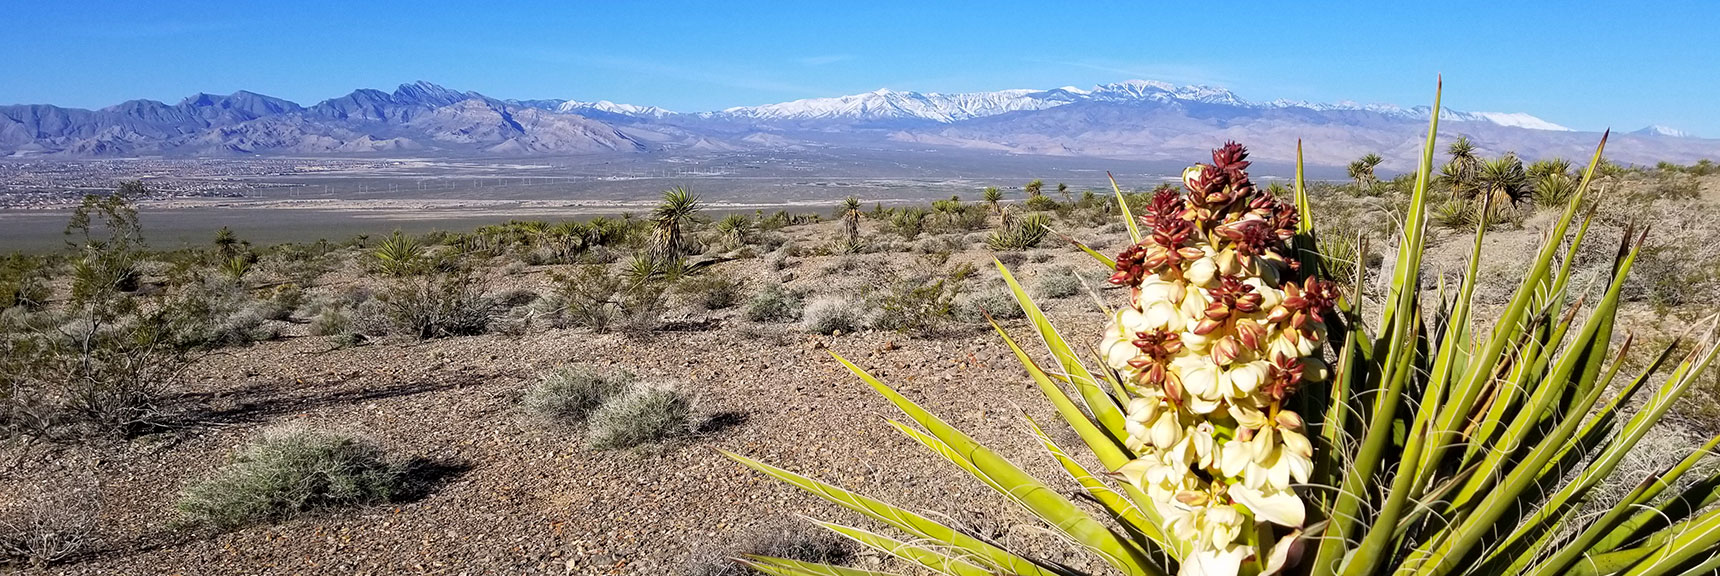 Yucca Plant in Bloom South of Gass Peak, Nevada